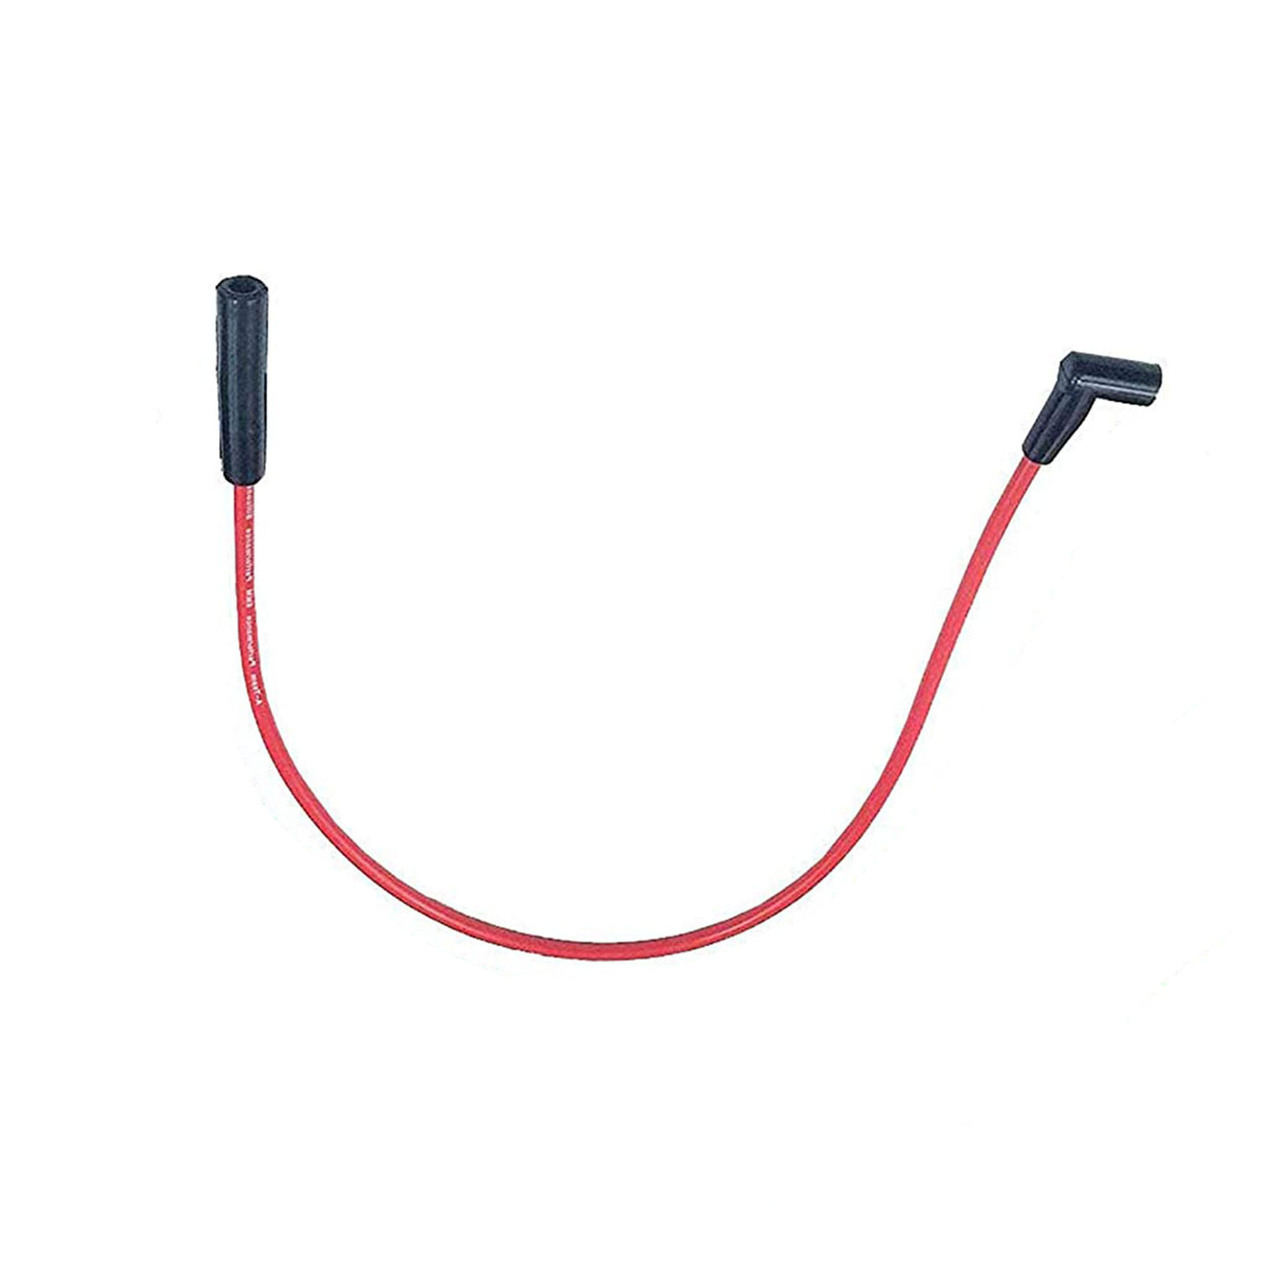 A-Team Performance 8.0mm Red Silicone Spark Plug Wires AMC/JEEP V8 290 304 343 360 390 401 Wires